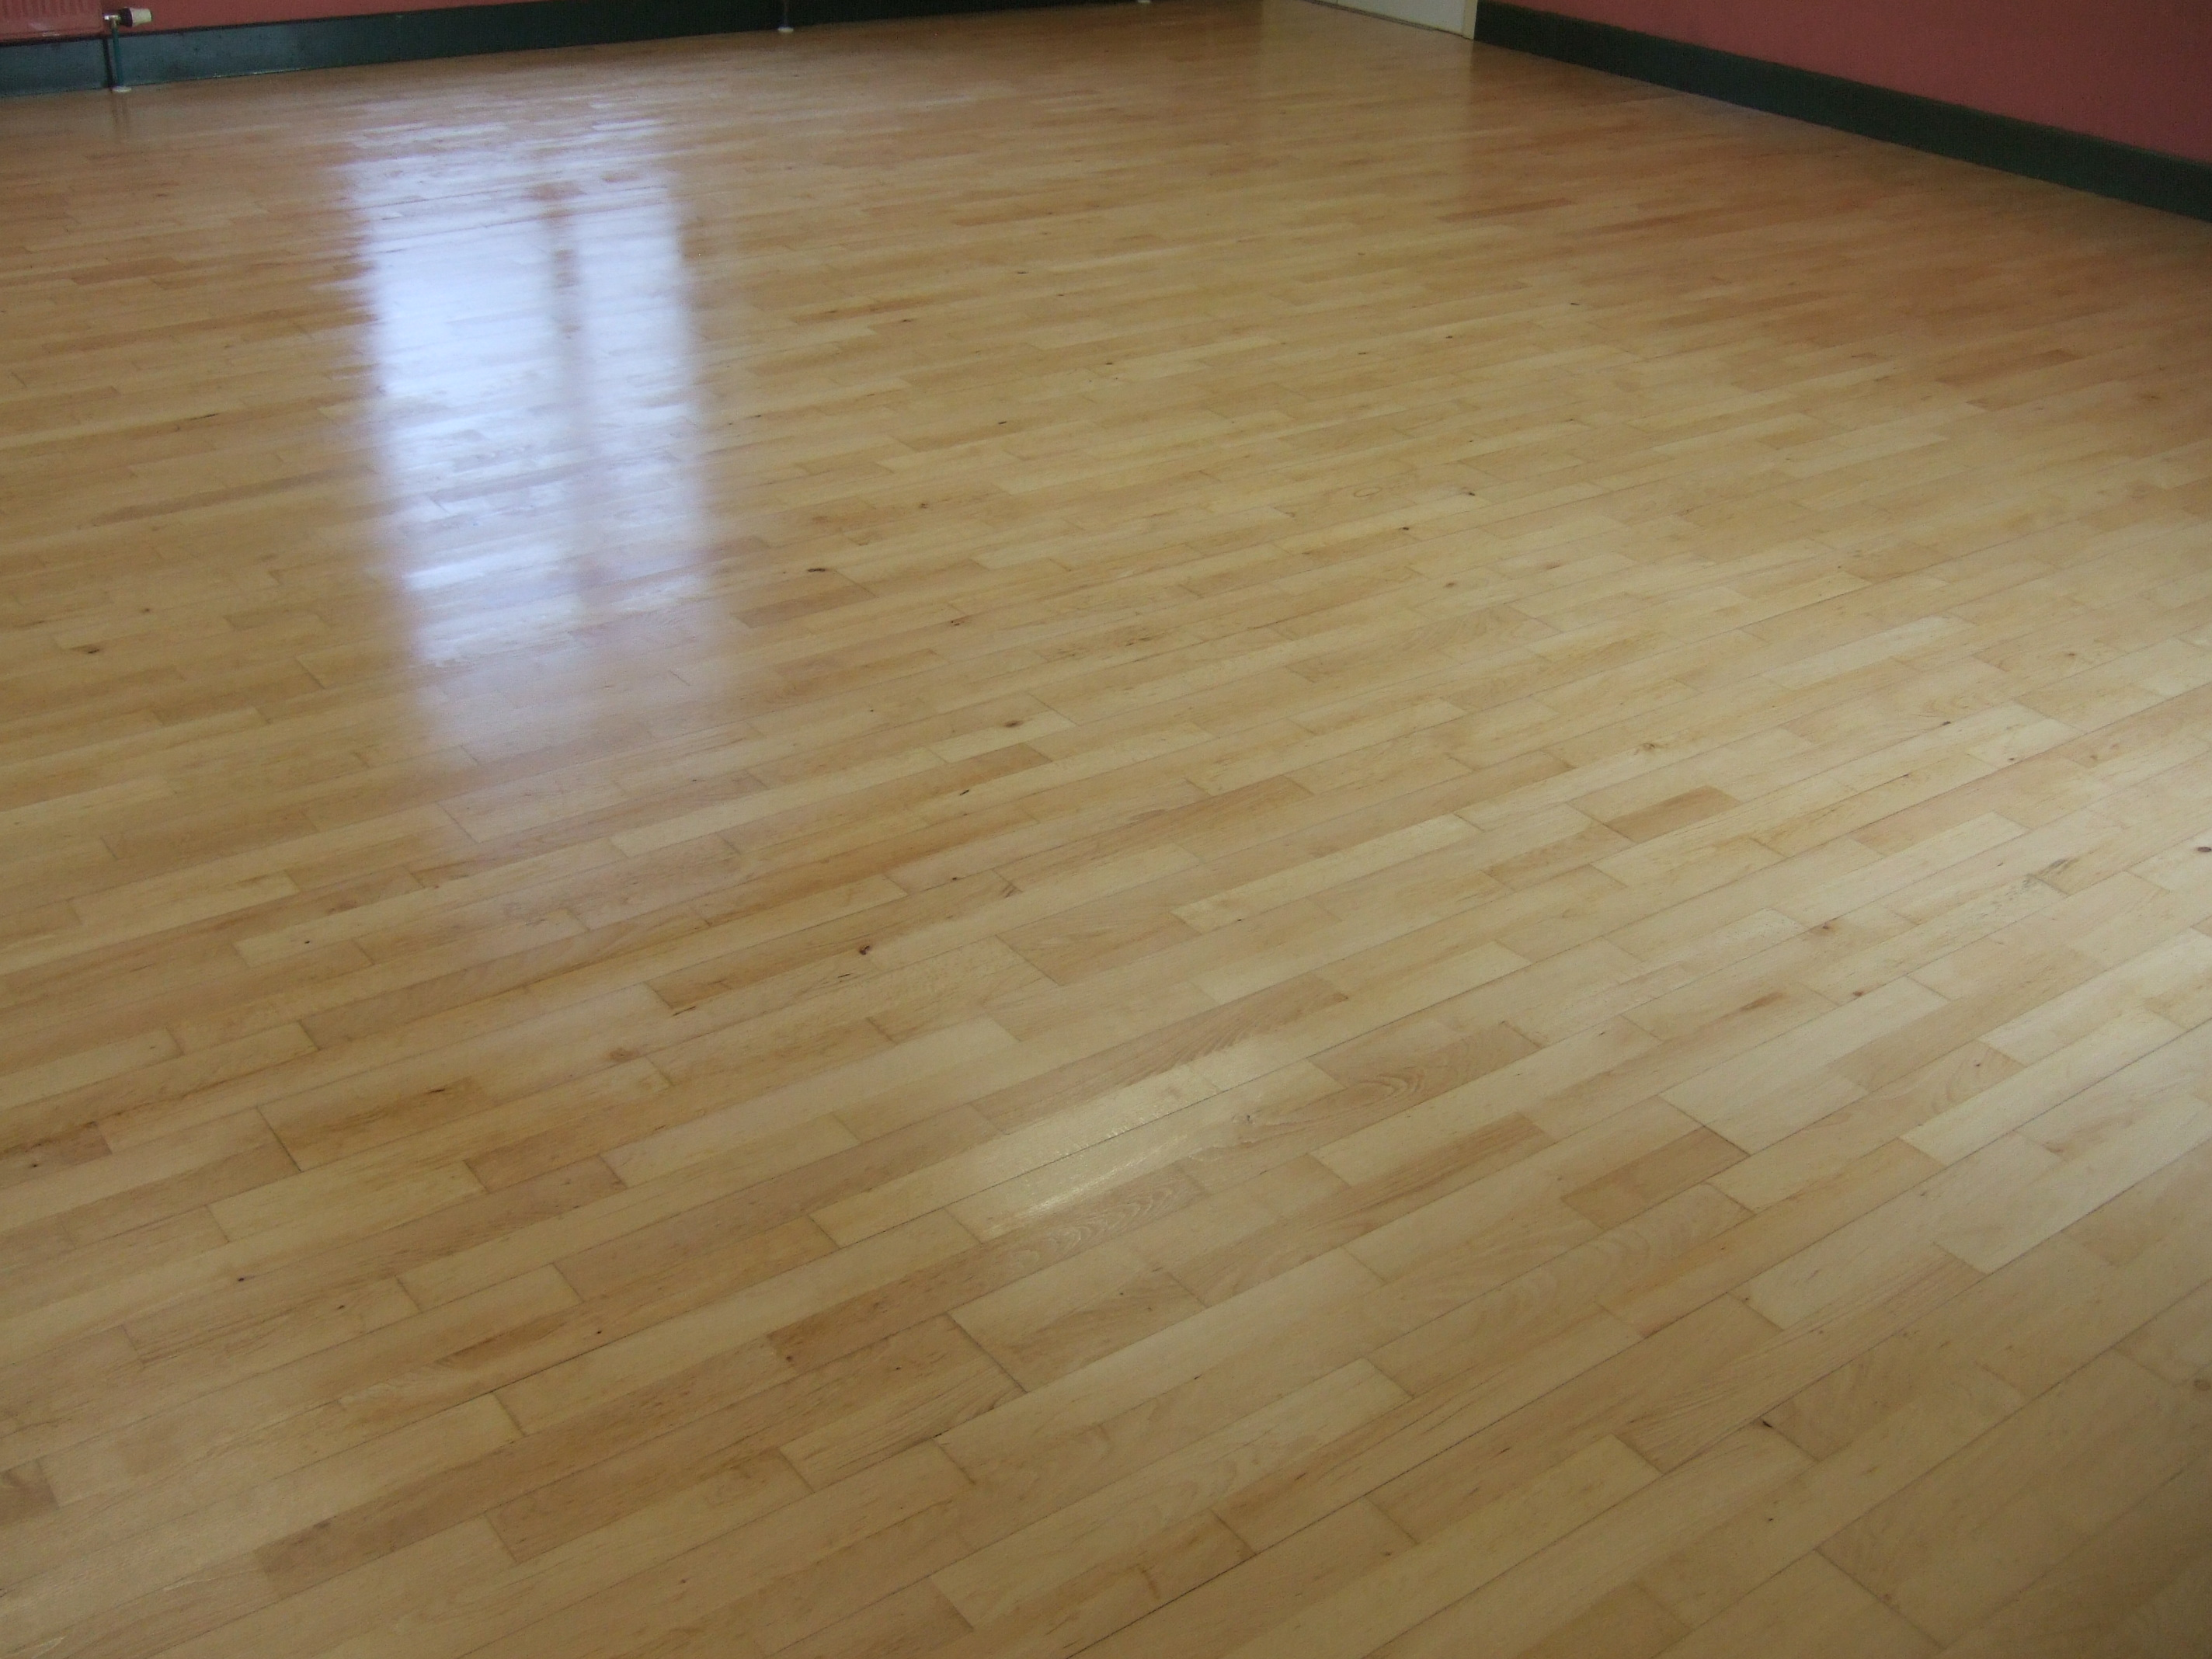 Village Hall laminate floor repaired